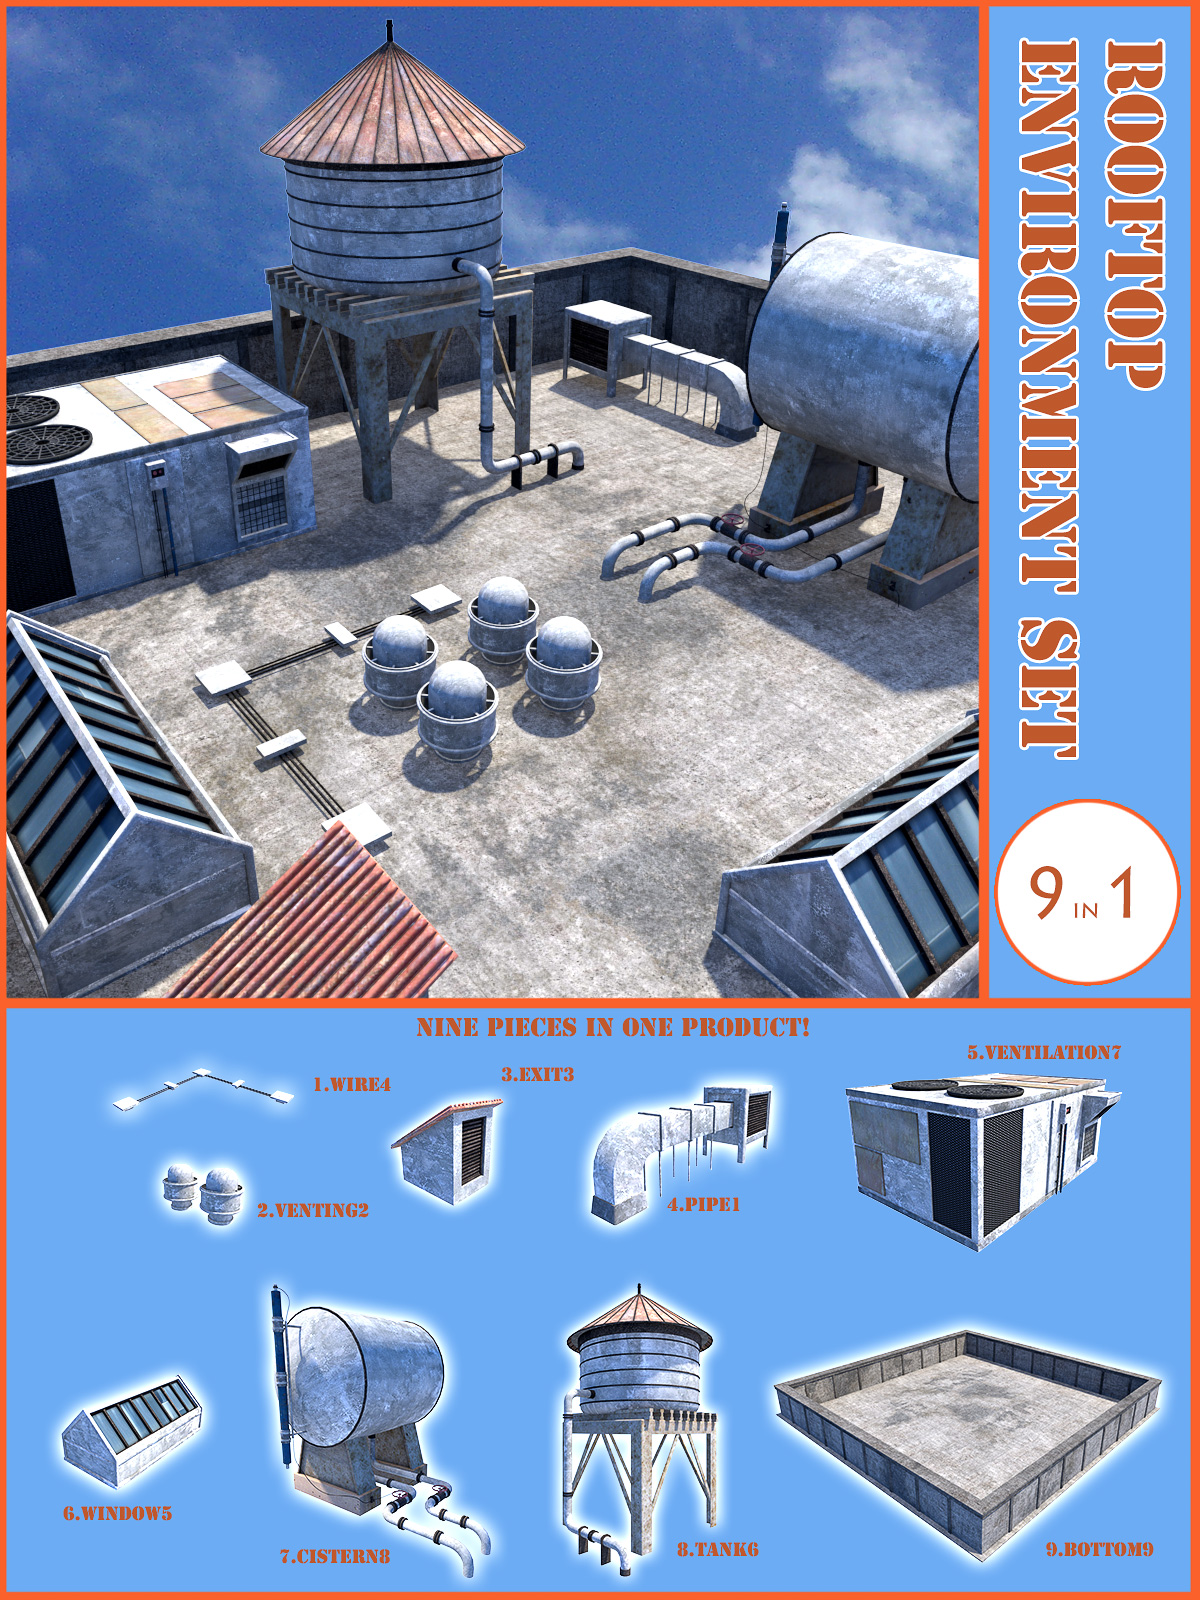 Rooftop environment set by 1971s